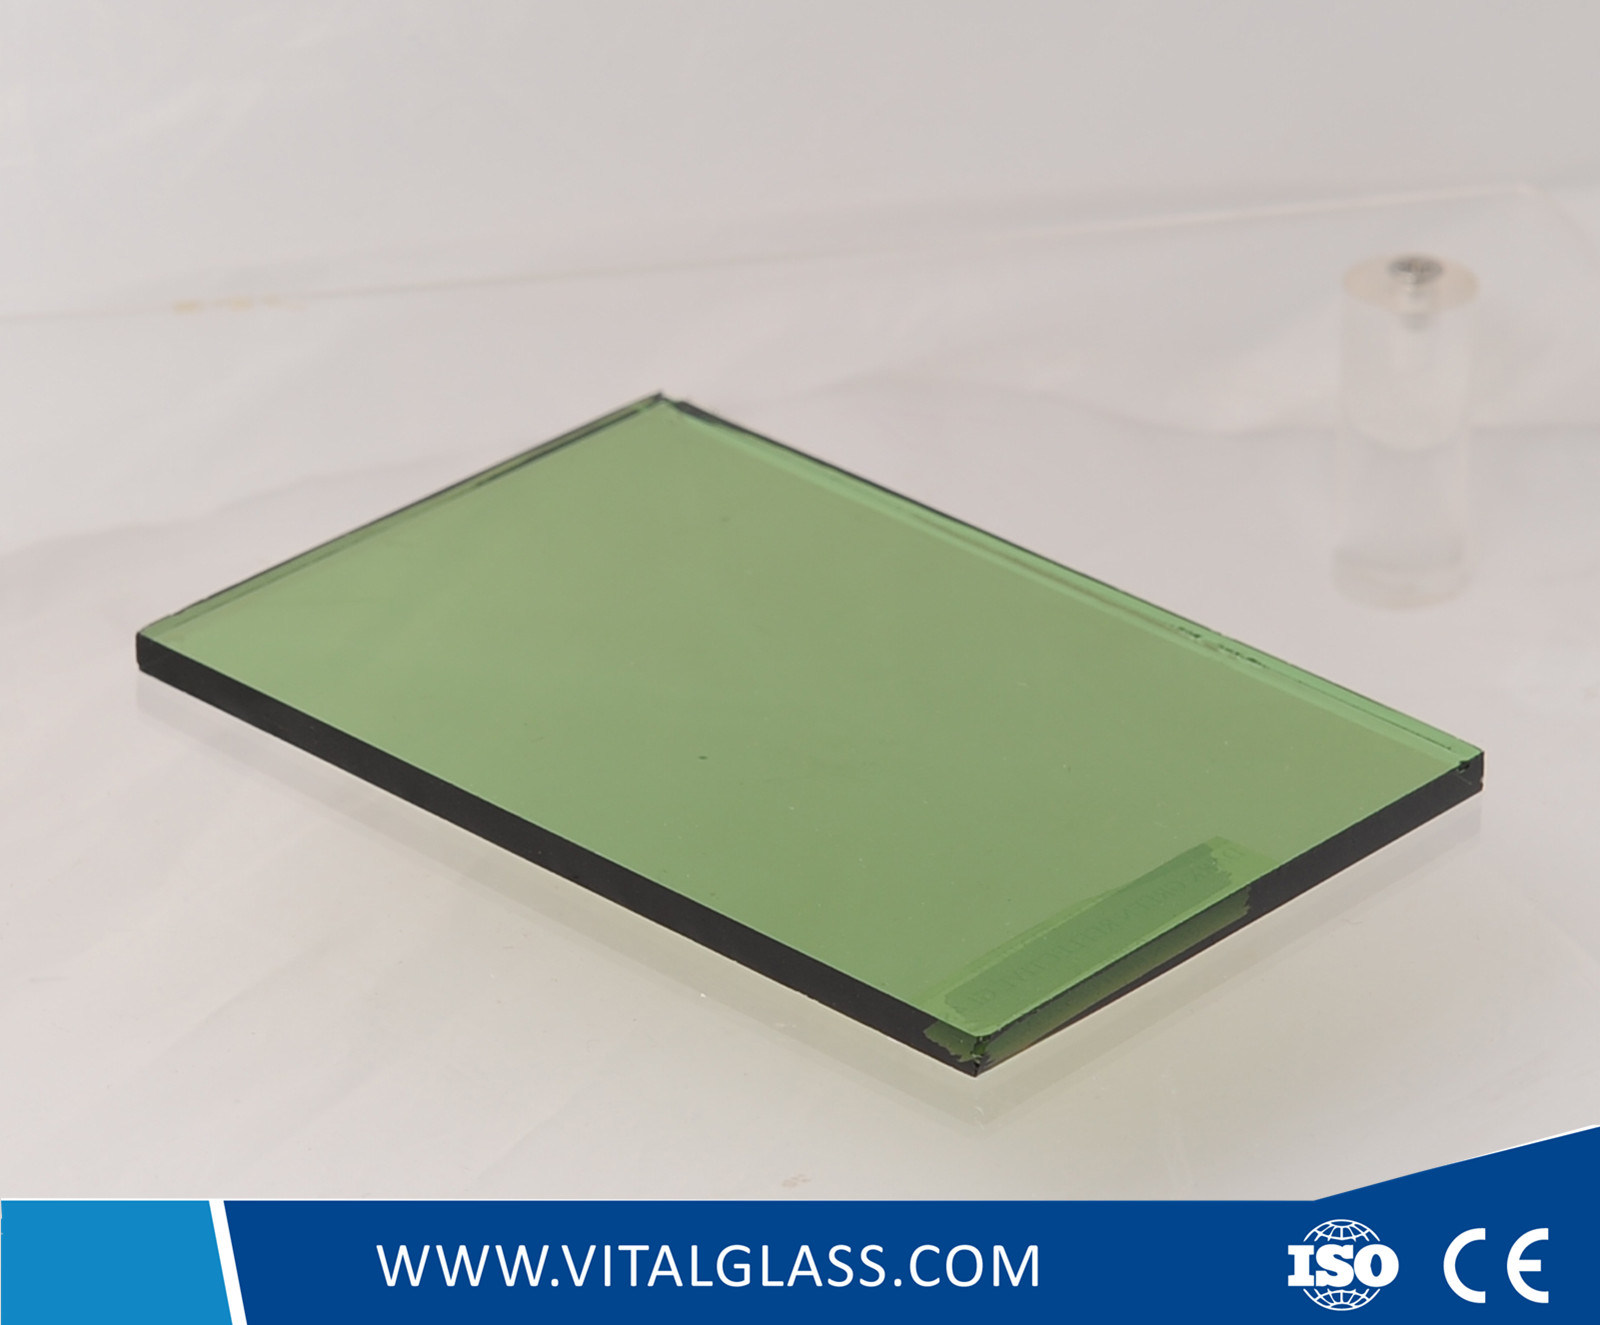 Dark/French Green Reflective Glass/Tinted Float Glass/Stained Glass